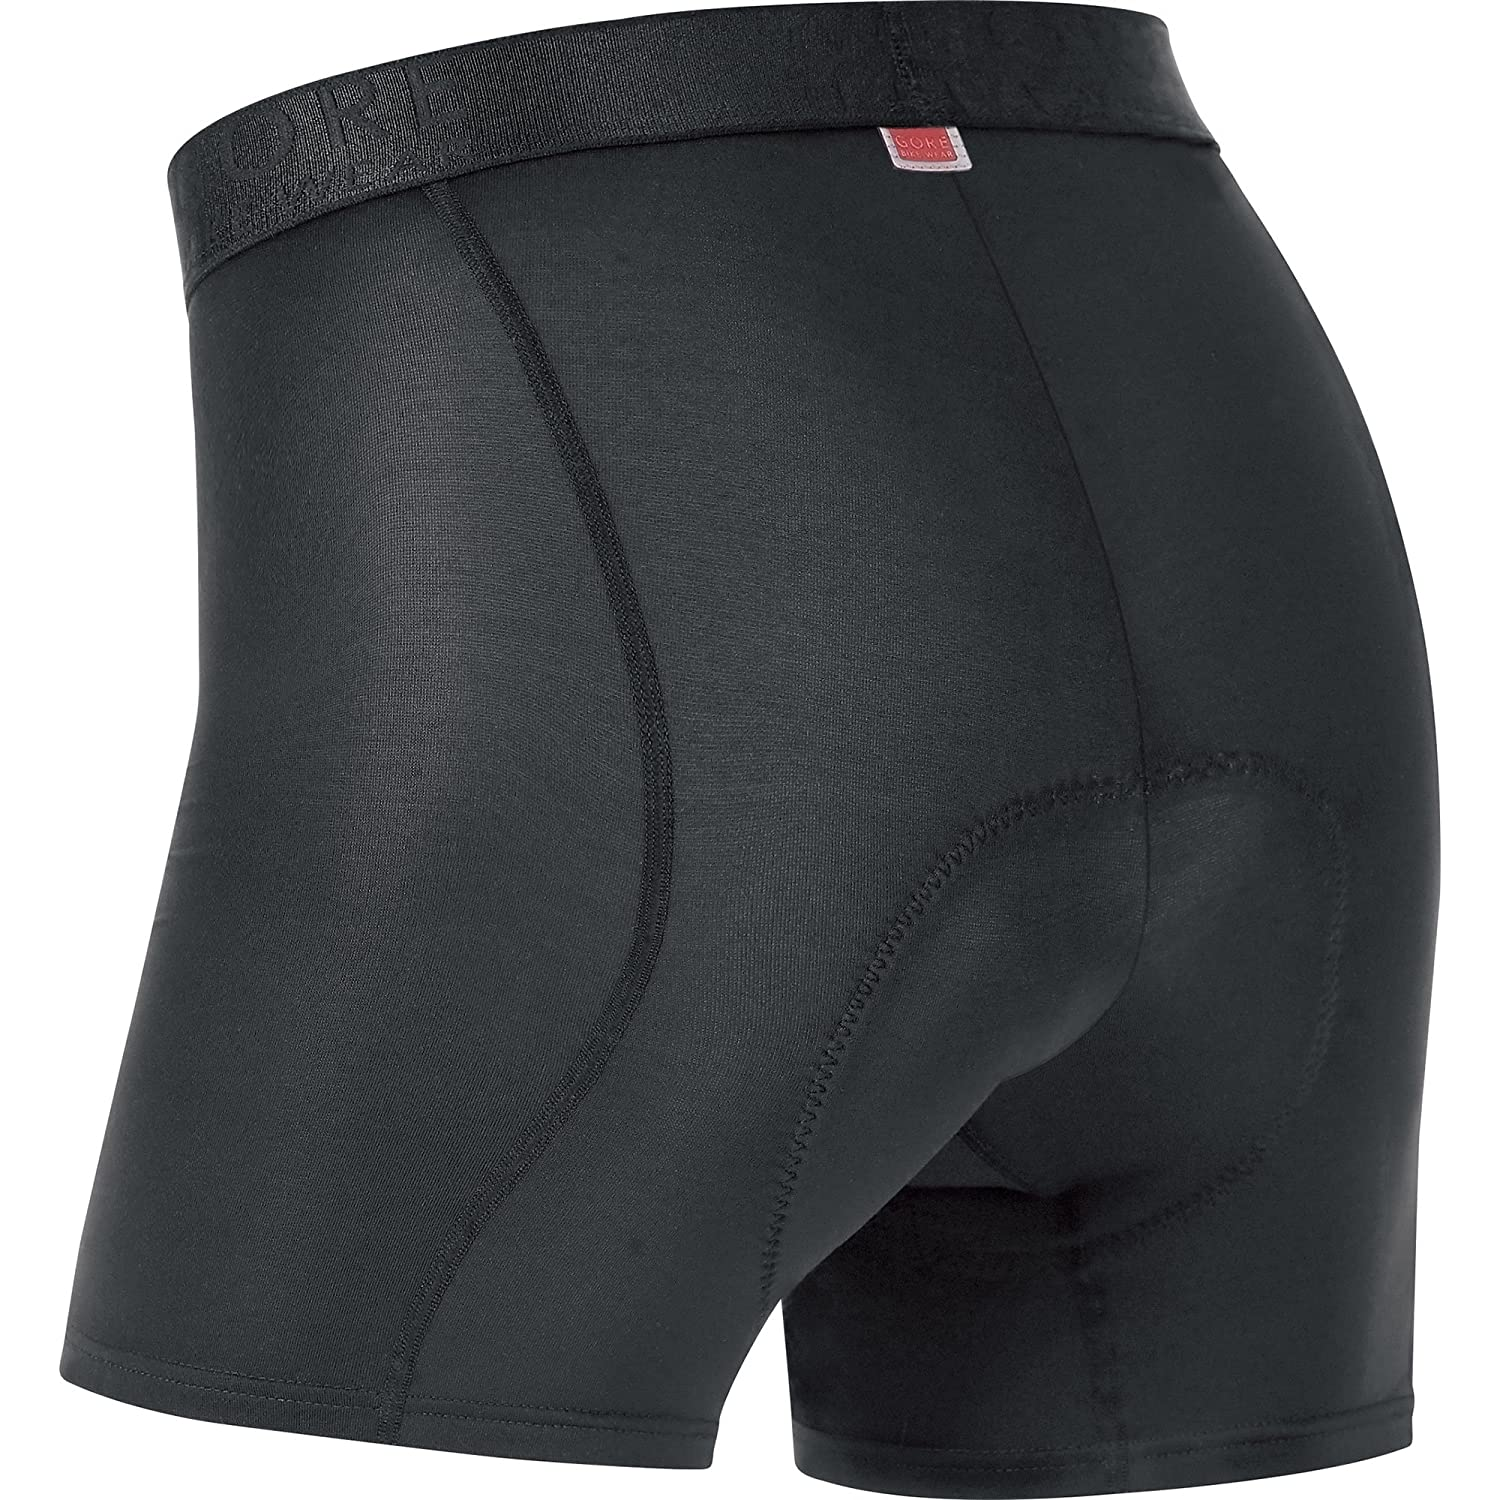 Gore Wear Men's 2in1 Breathable Running Shorts, R5 2in1 Shorts, Size: S,  Colour: Castor Grey/Terra Grey, 100001: Amazon.co.uk: Sports & Outdoors